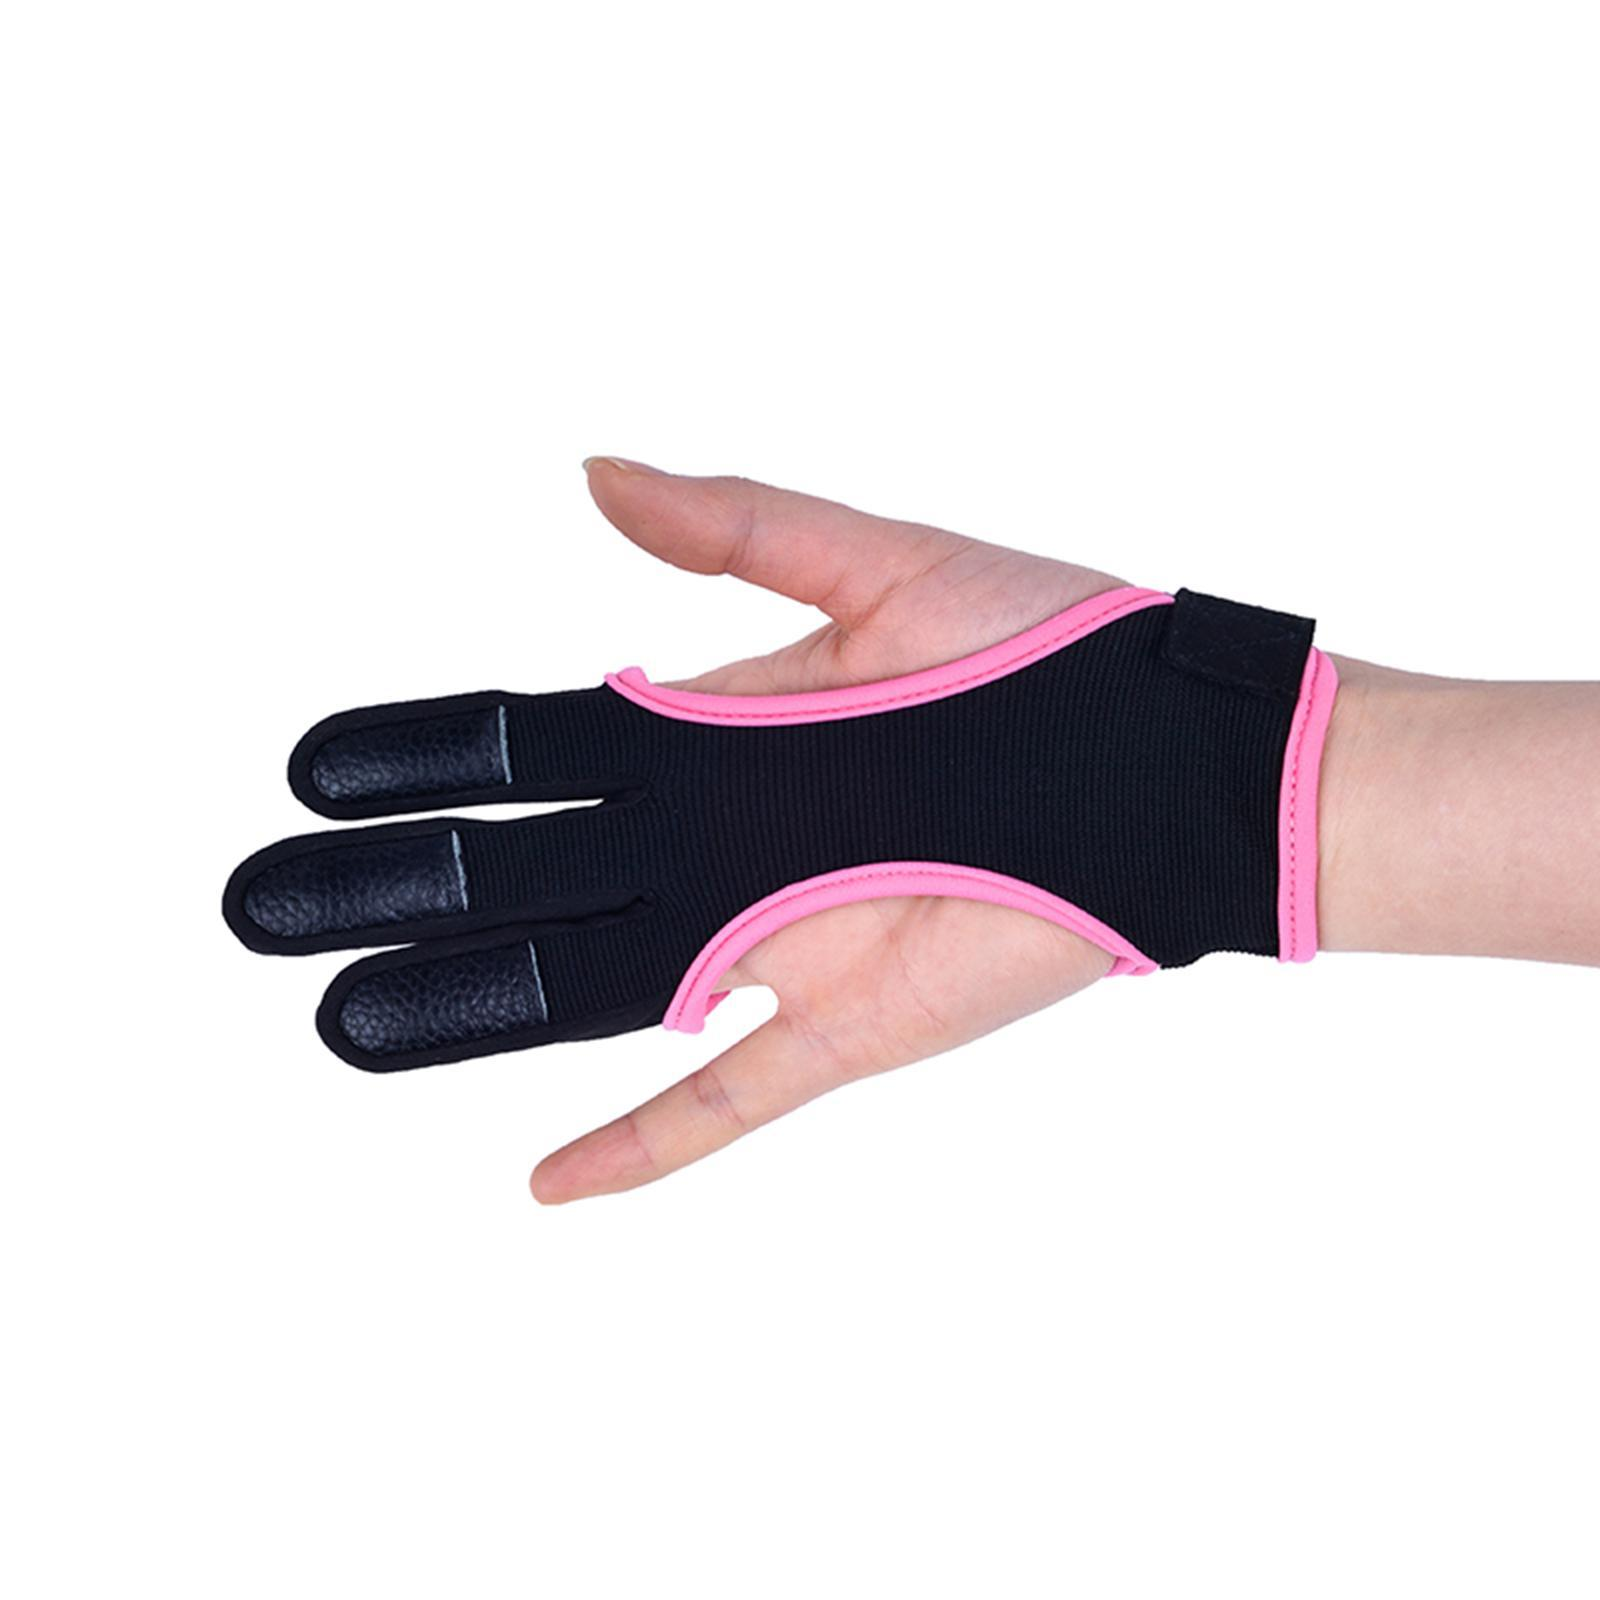 thumbnail 21 - Archery Glove for Recurve & Compound Bow 3 Finger Guard for Women Men Youth